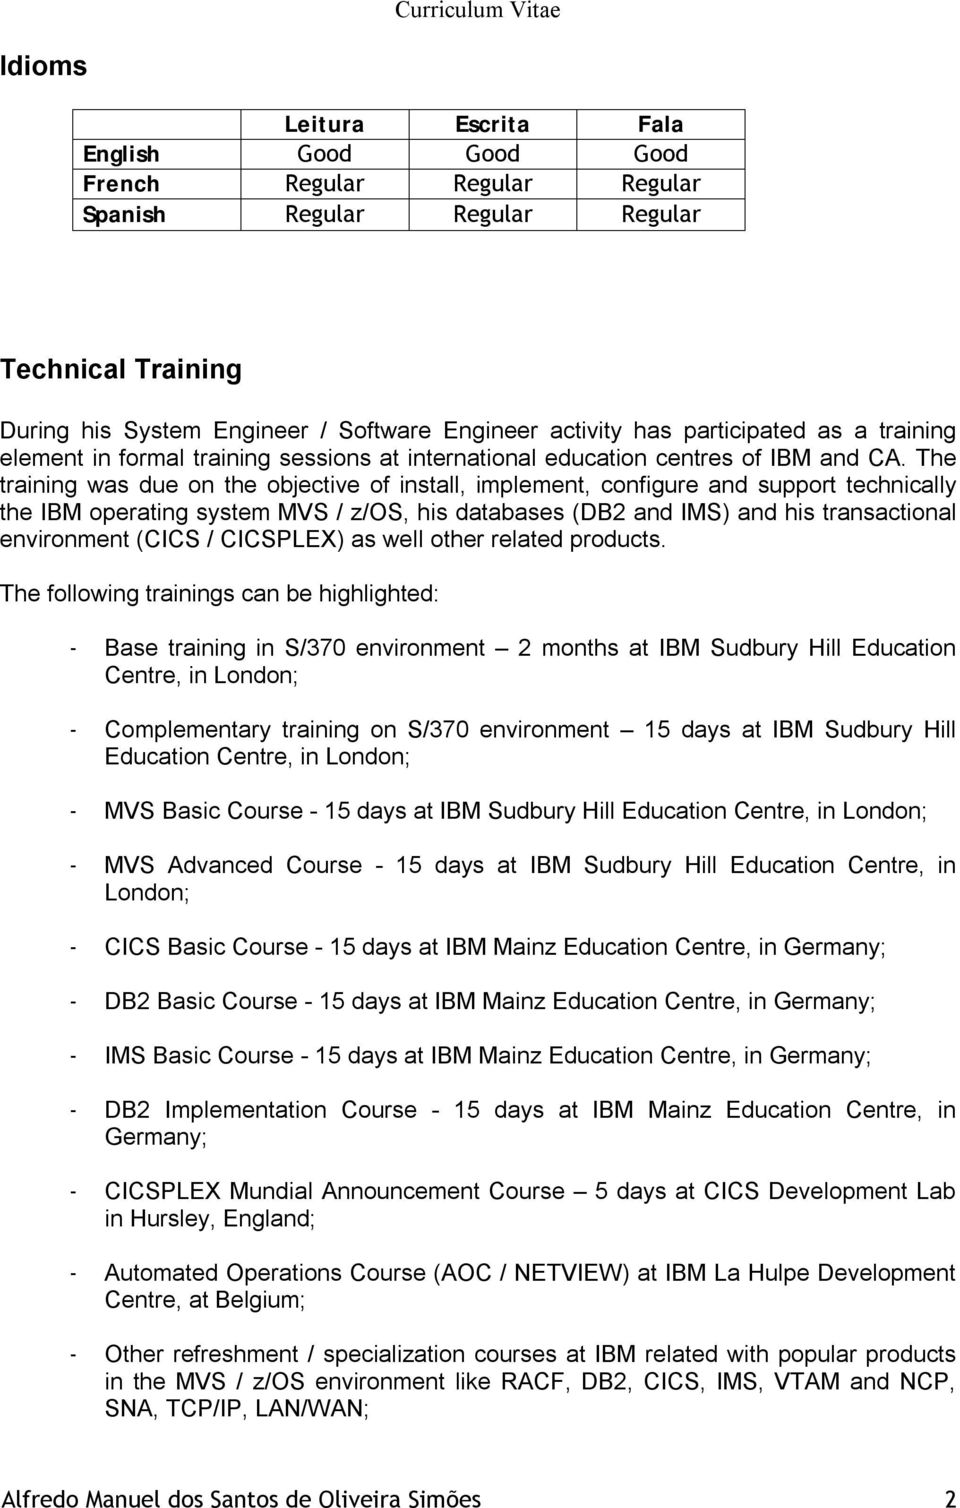 The training was due on the objective of install, implement, configure and support technically the IBM operating system MVS / z/os, his databases (DB2 and IMS) and his transactional environment (CICS